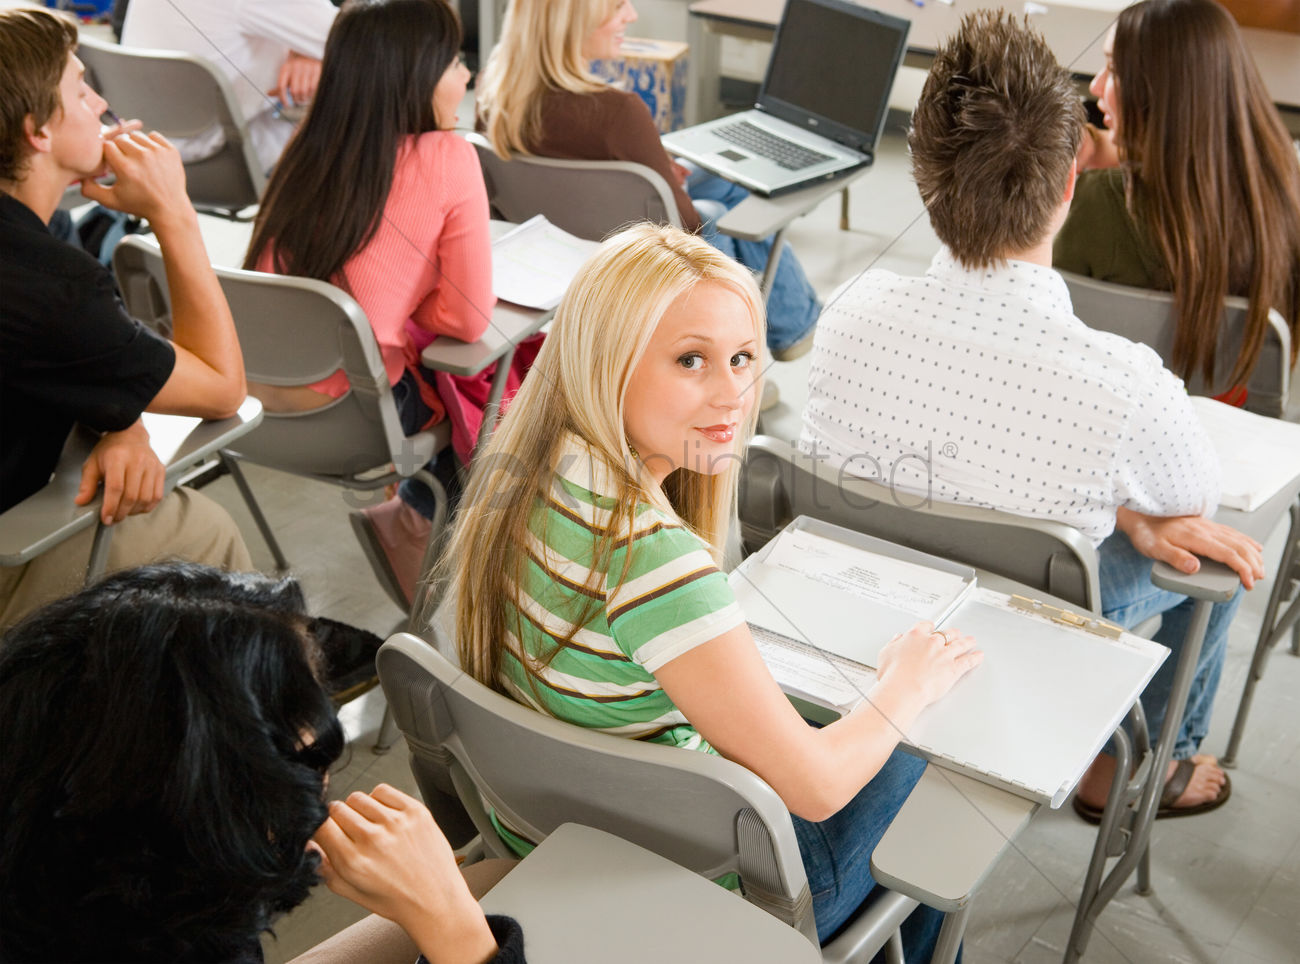 Student Sitting At Desk During Cl Portrait Stock Photo